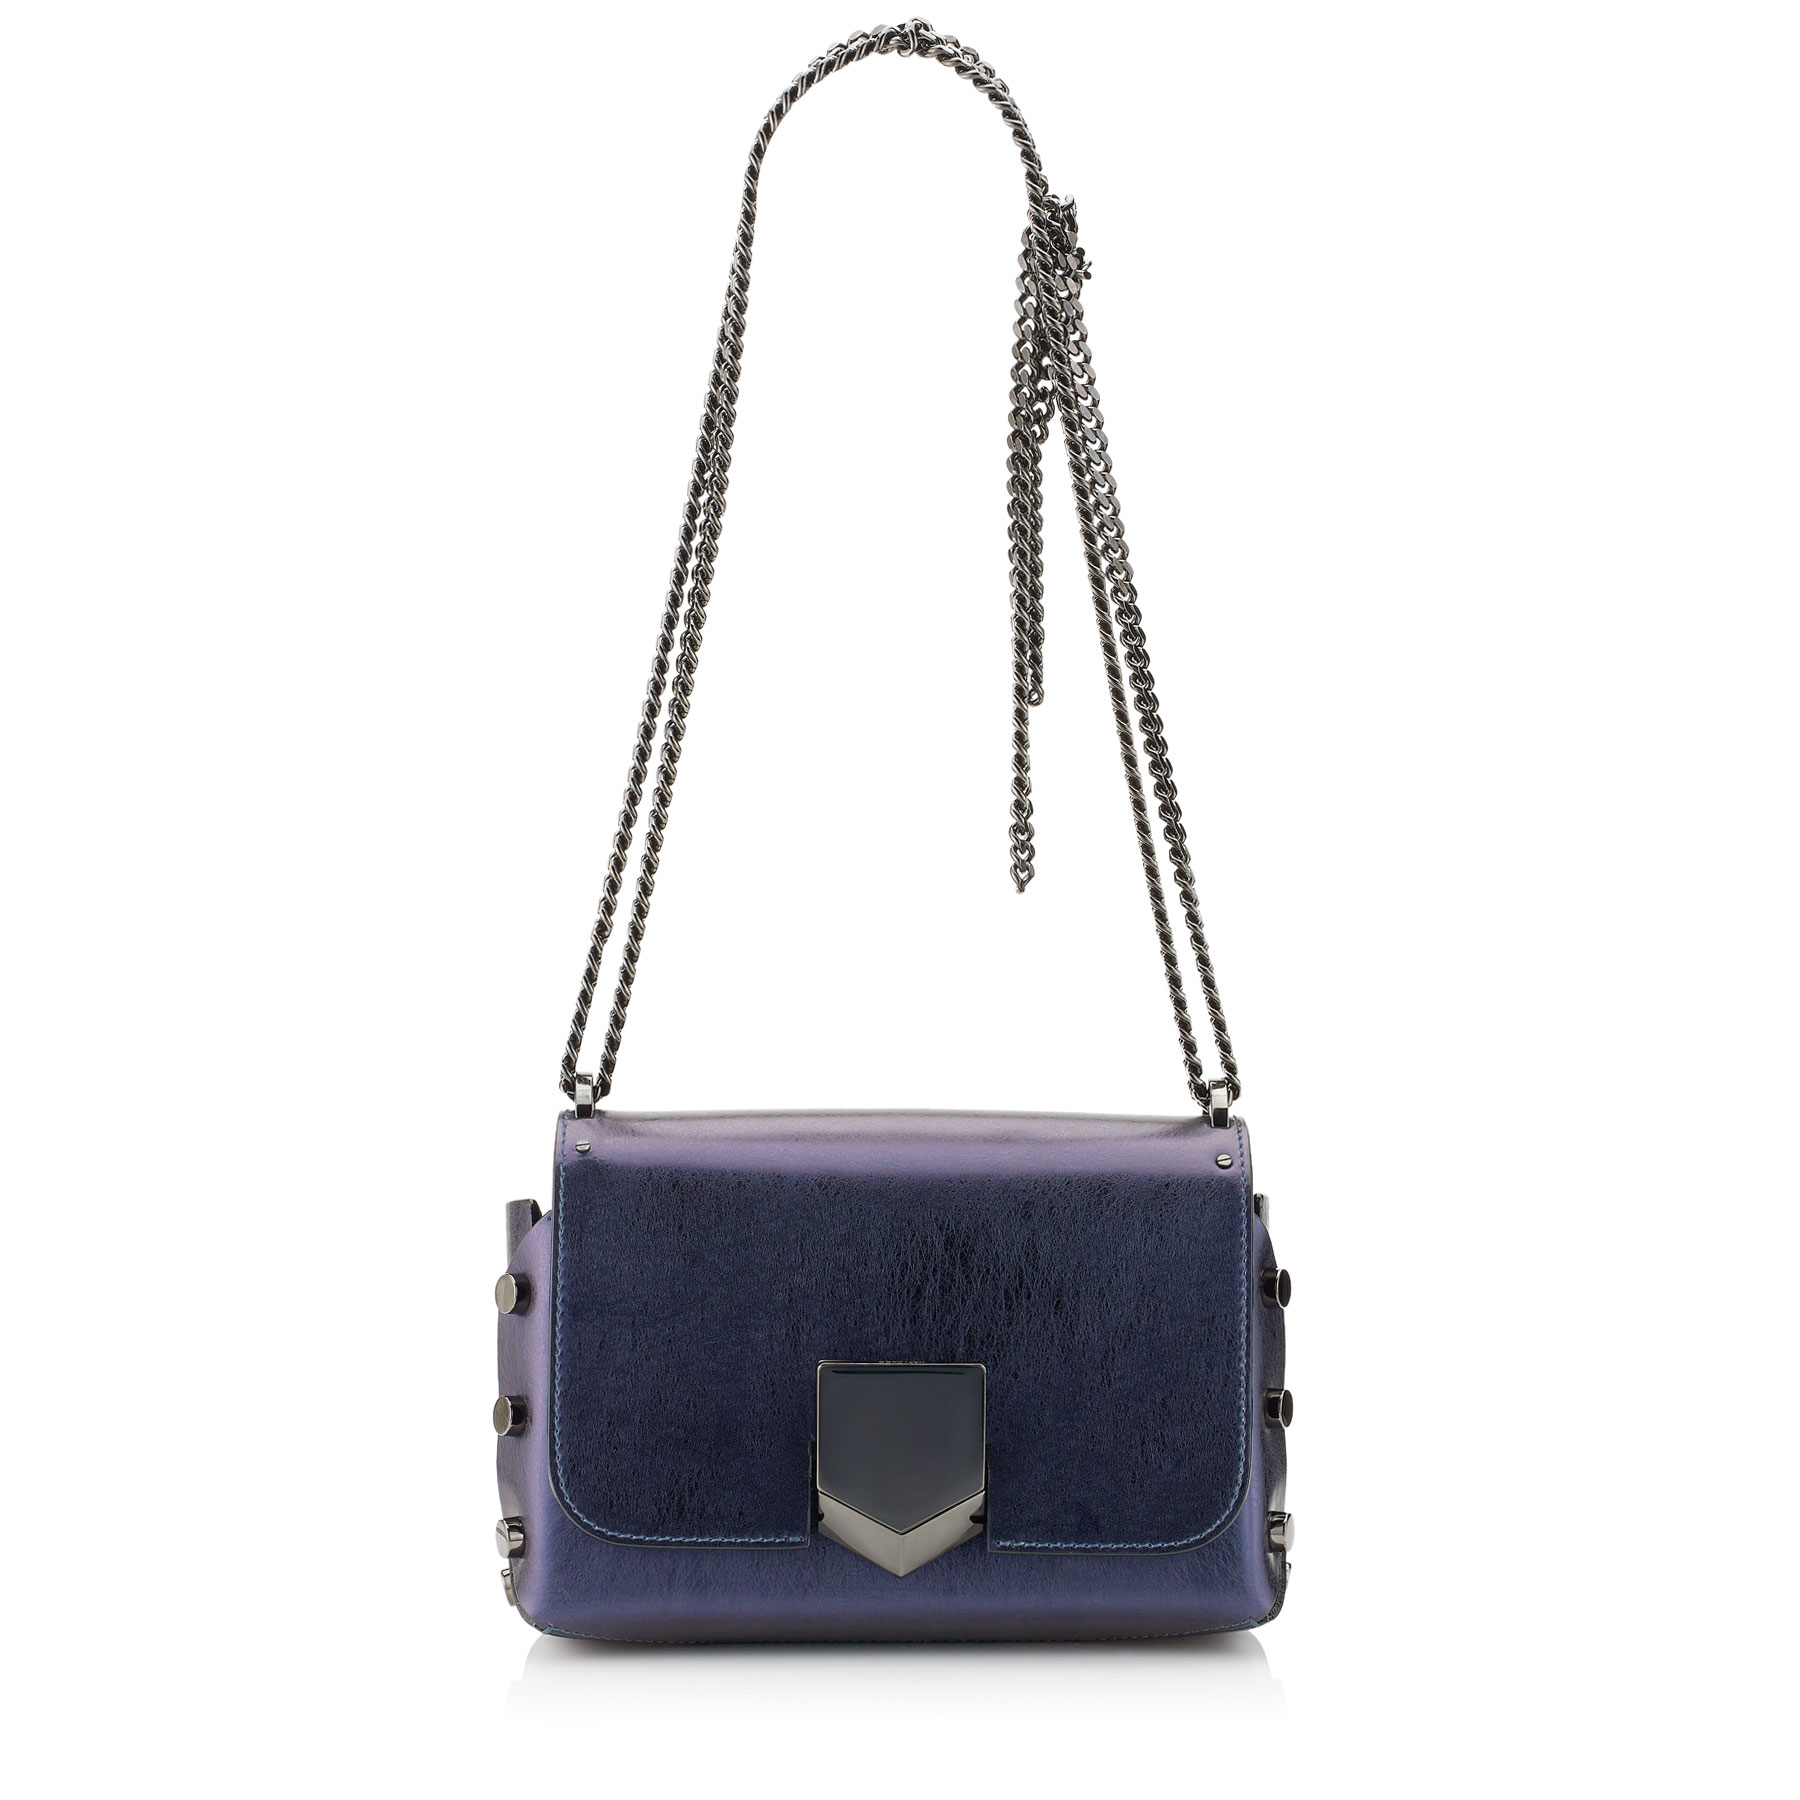 LOCKETT PETITE Navy Etched Spazzolato Leather Shoulder Bag